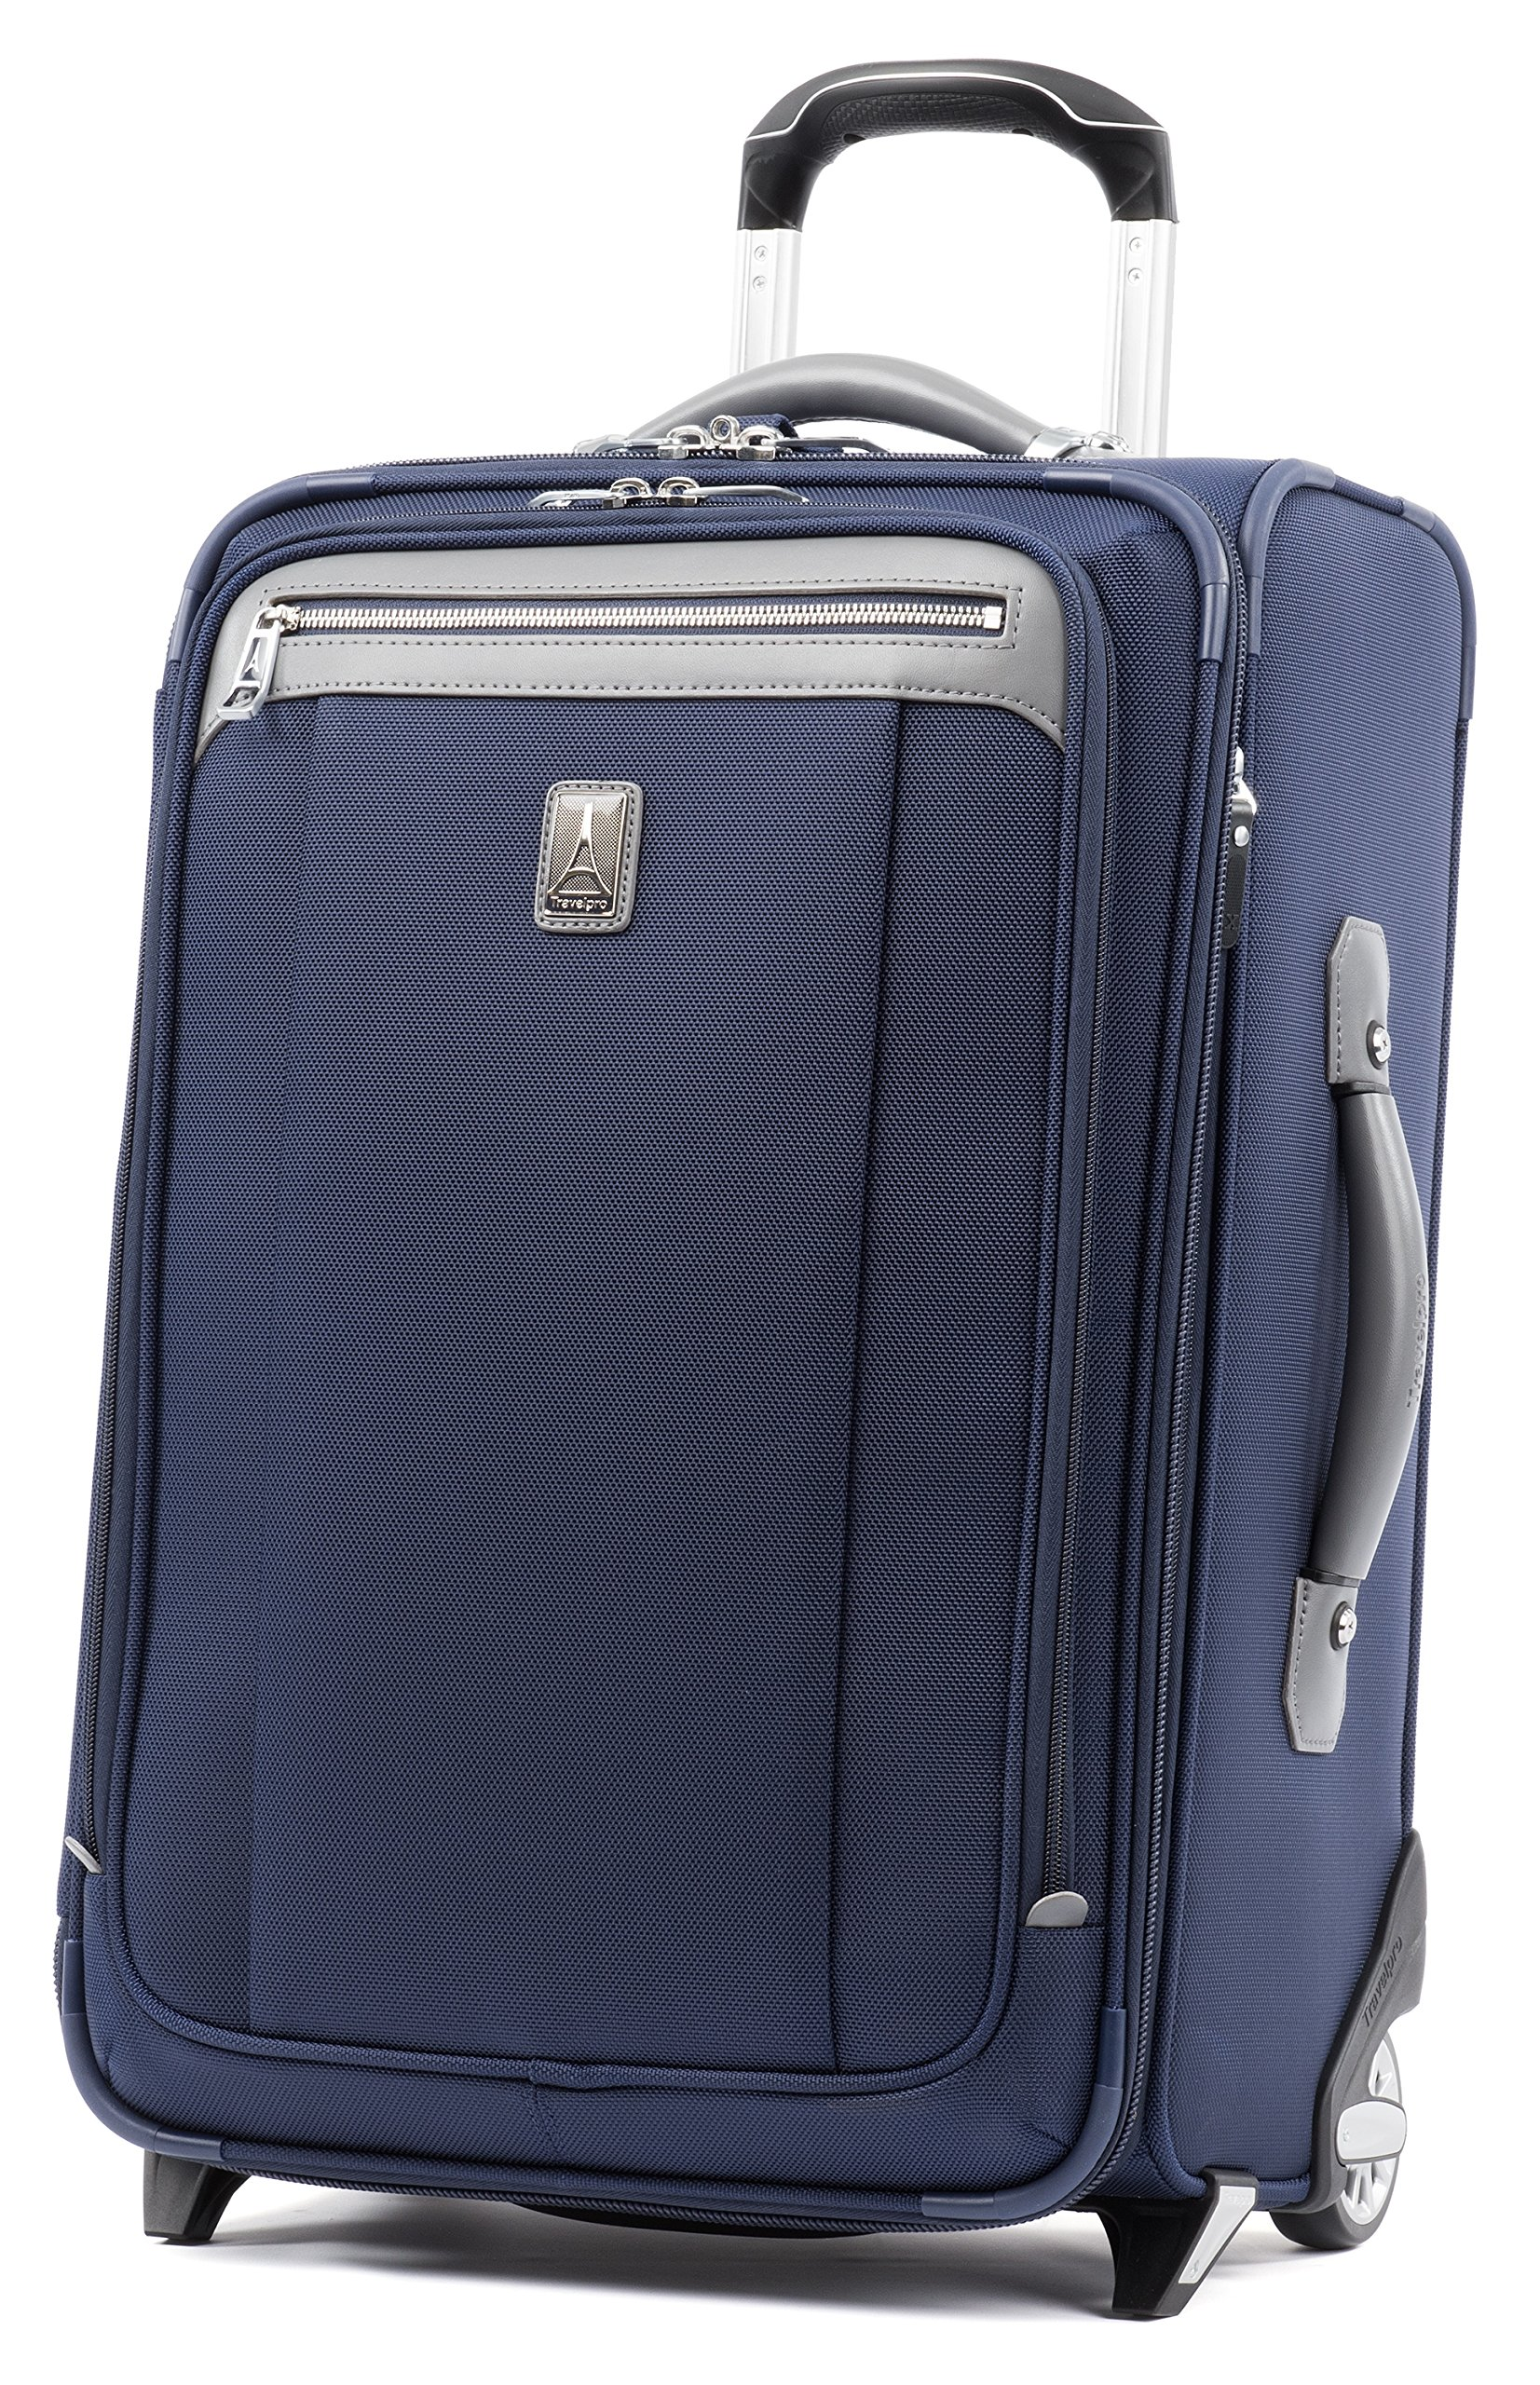 Travelpro Platinum Magna 2 22 Inch Express Rollaboard Suitcase (Navy) by Travelpro